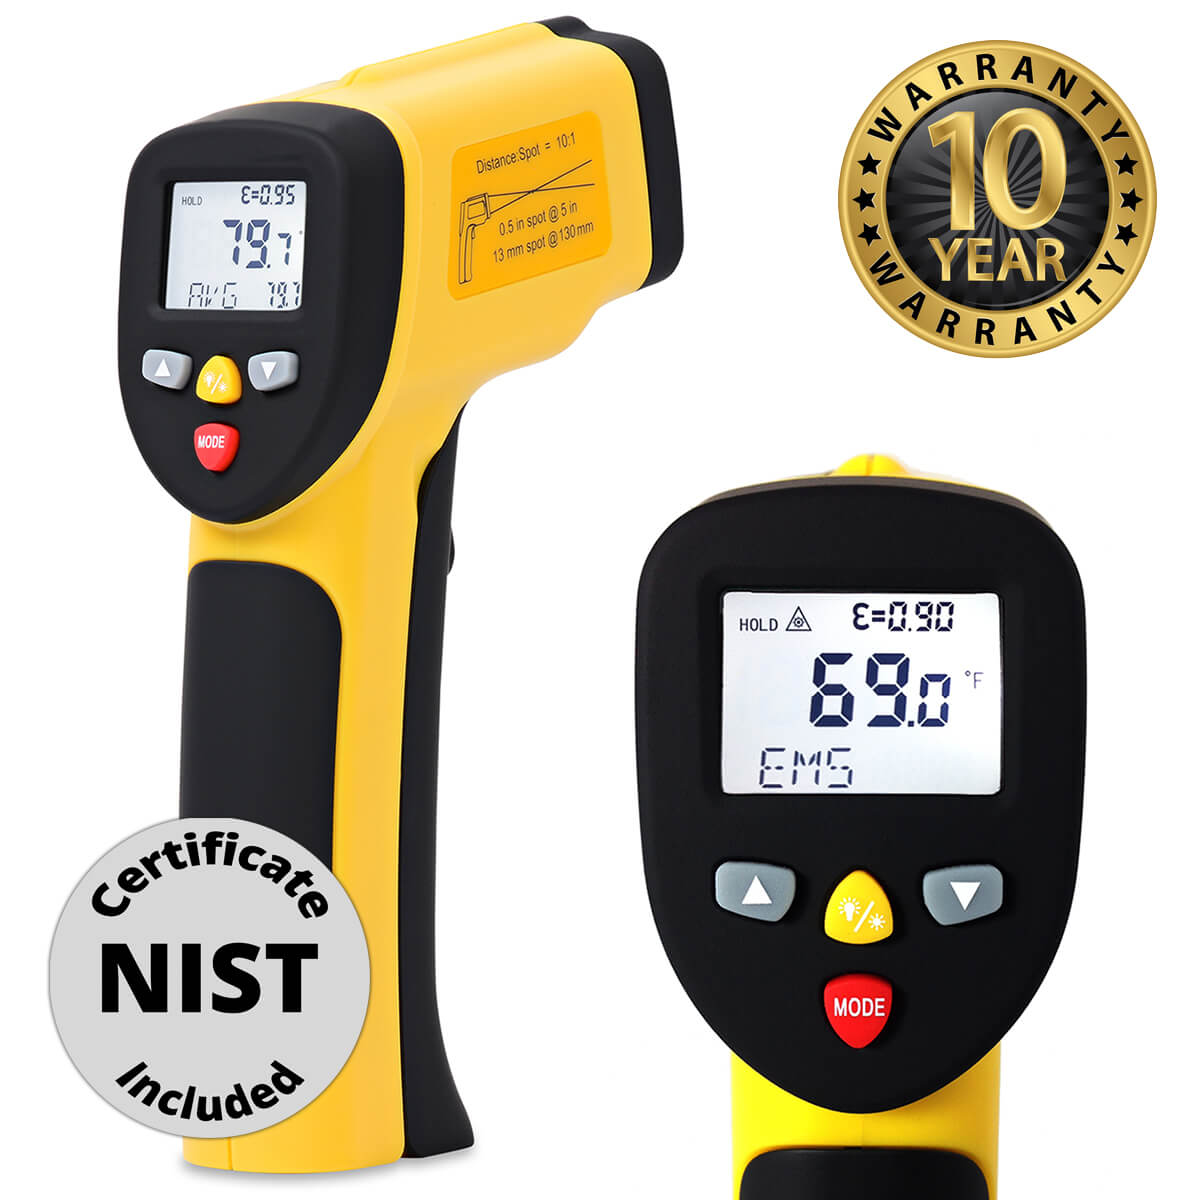 eT1050D laser temperature gun with NIST certificate and 10 year warranty